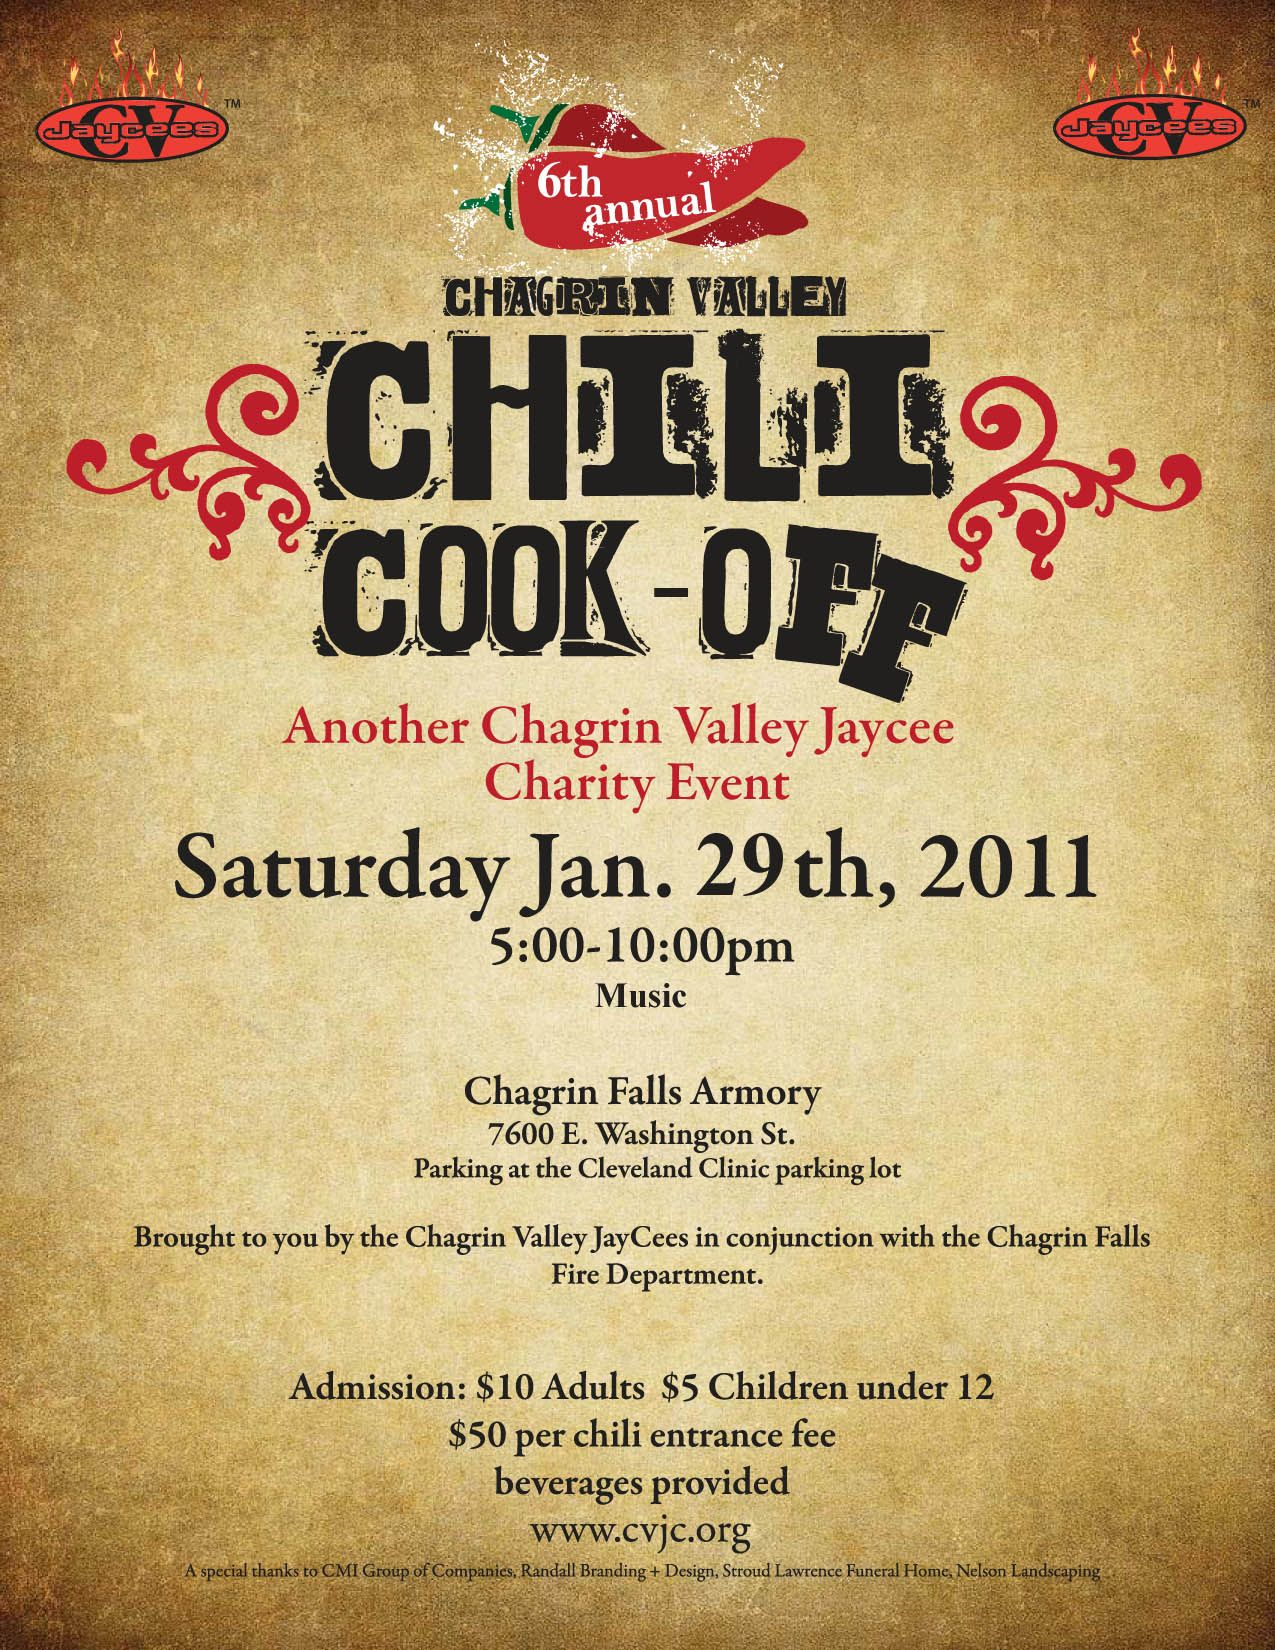 Chili Cook Off Flyer Template Free Printable - Wow - Image - Free Printable Flyers For Church